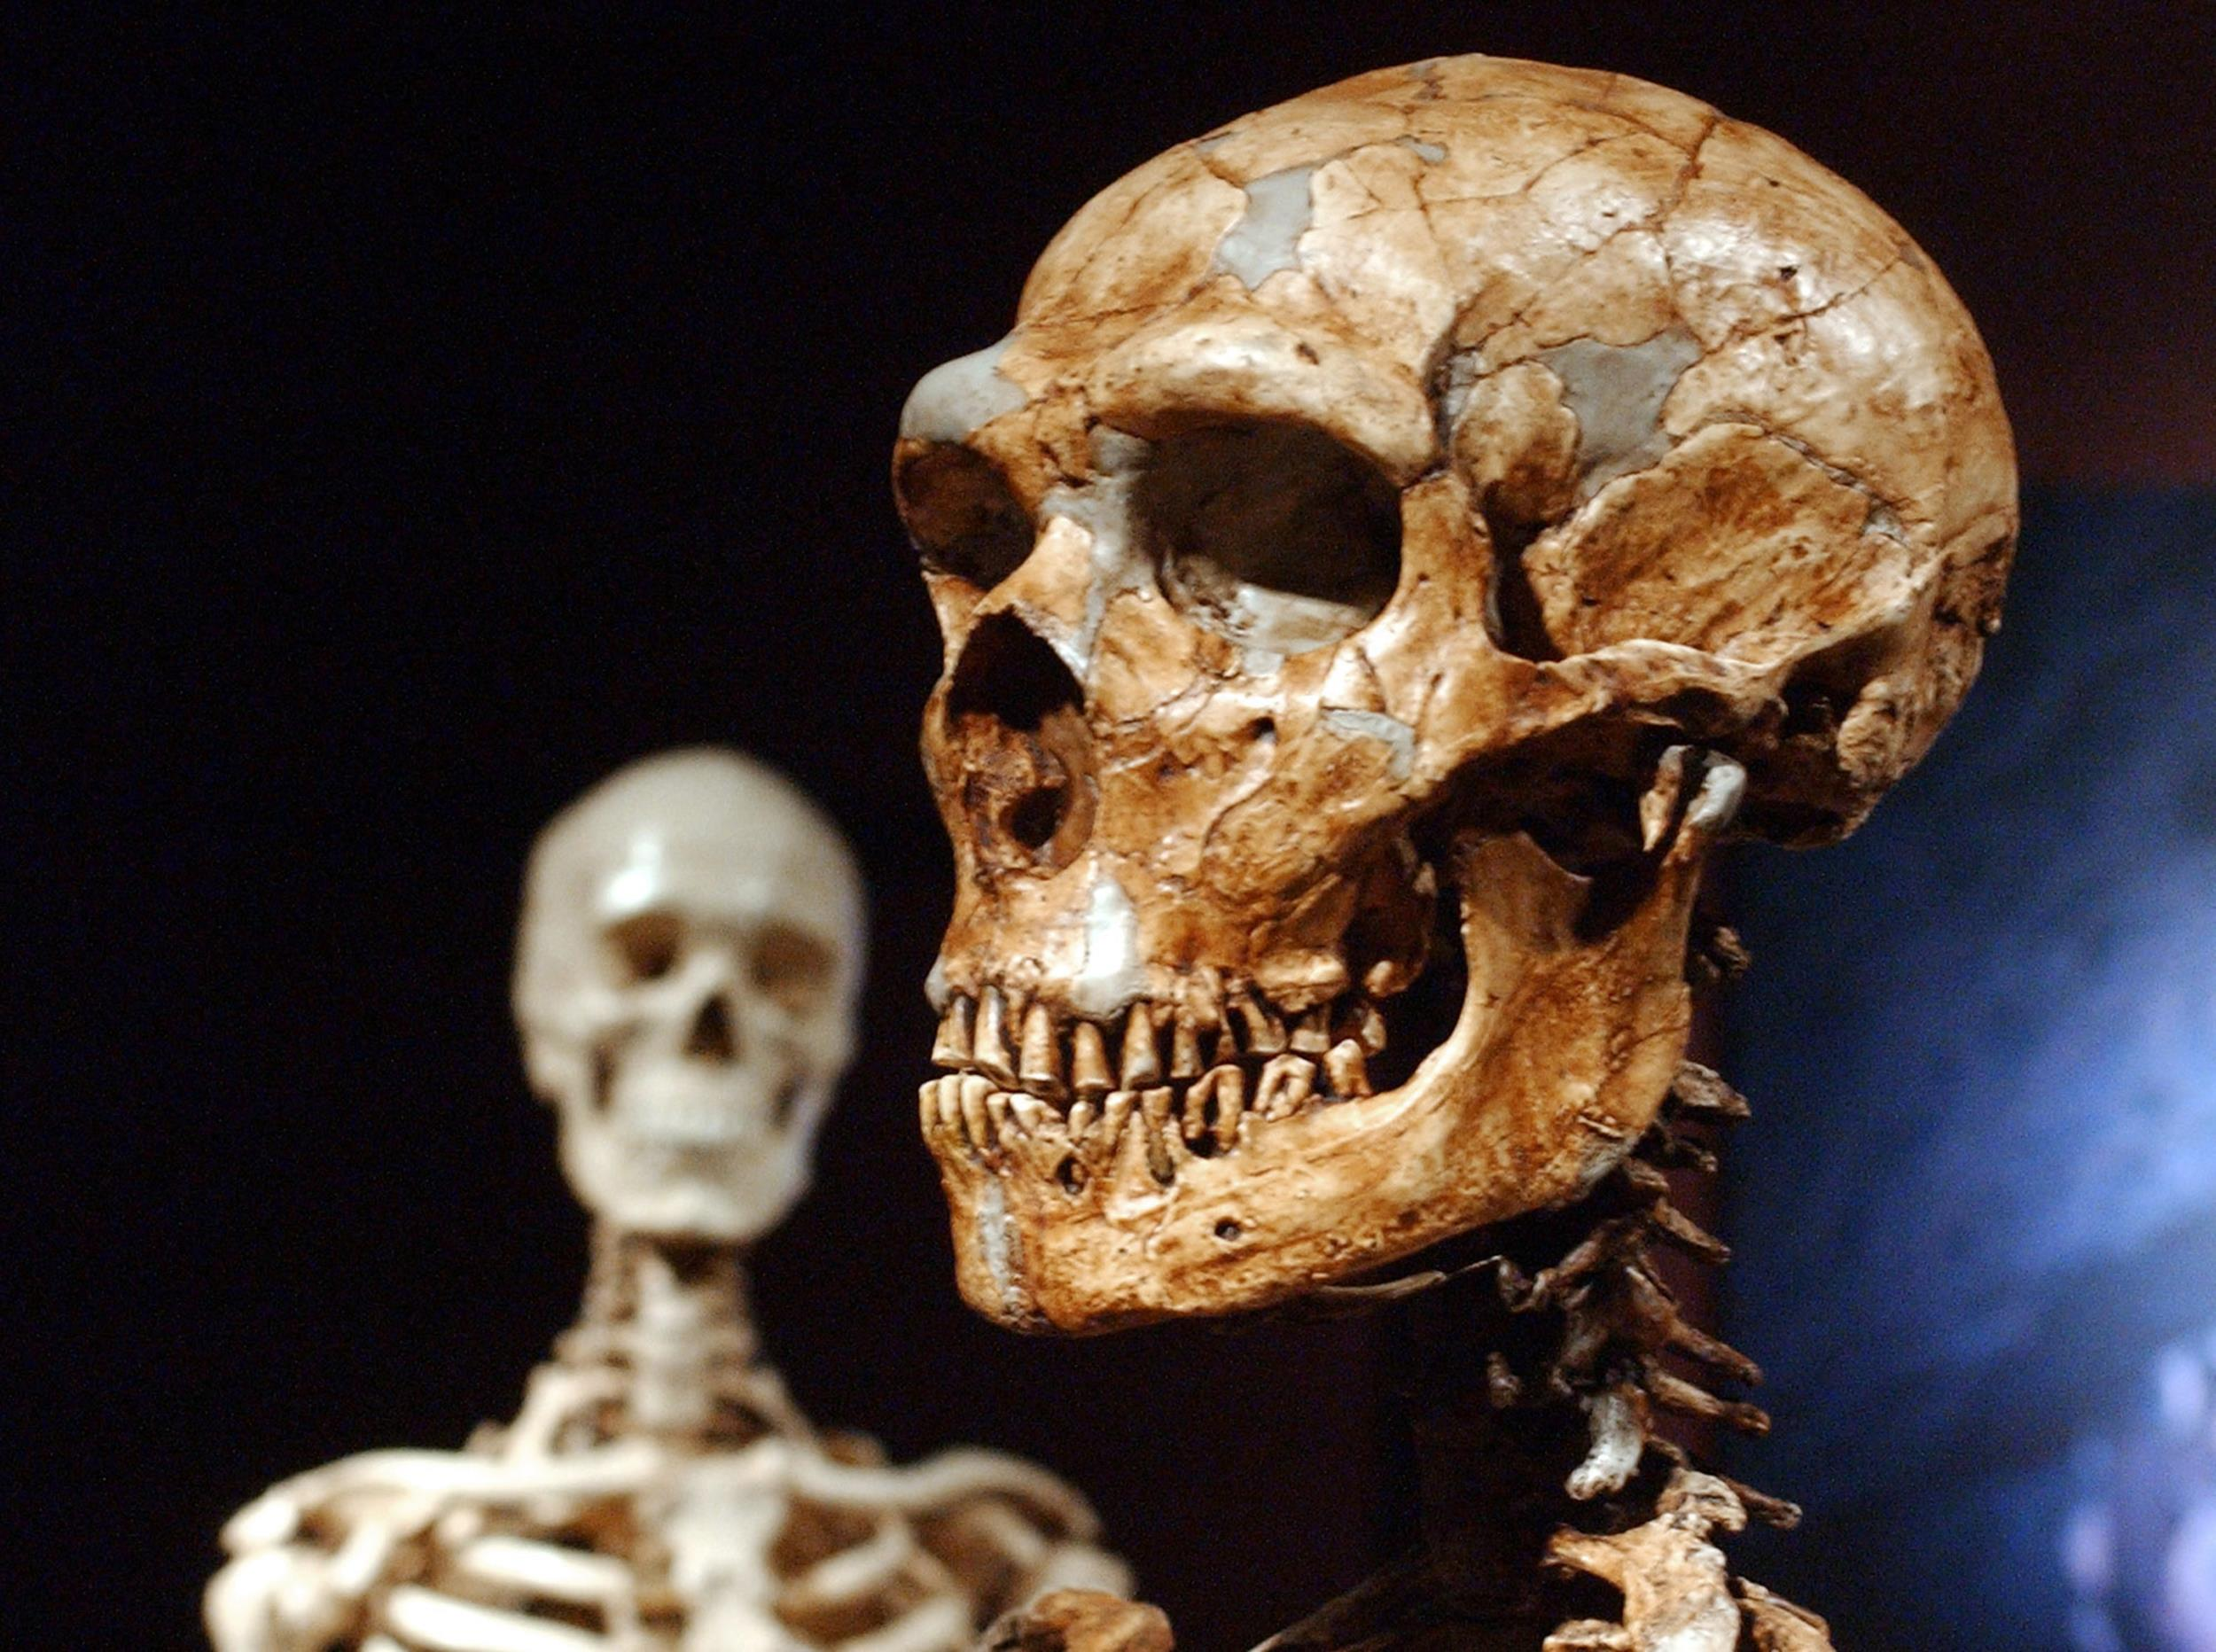 Image: A reconstructed Neanderthal skeleton, right, and a modern human version of a skelaton, left, are on display at the Museum of Natural History in N.Y.